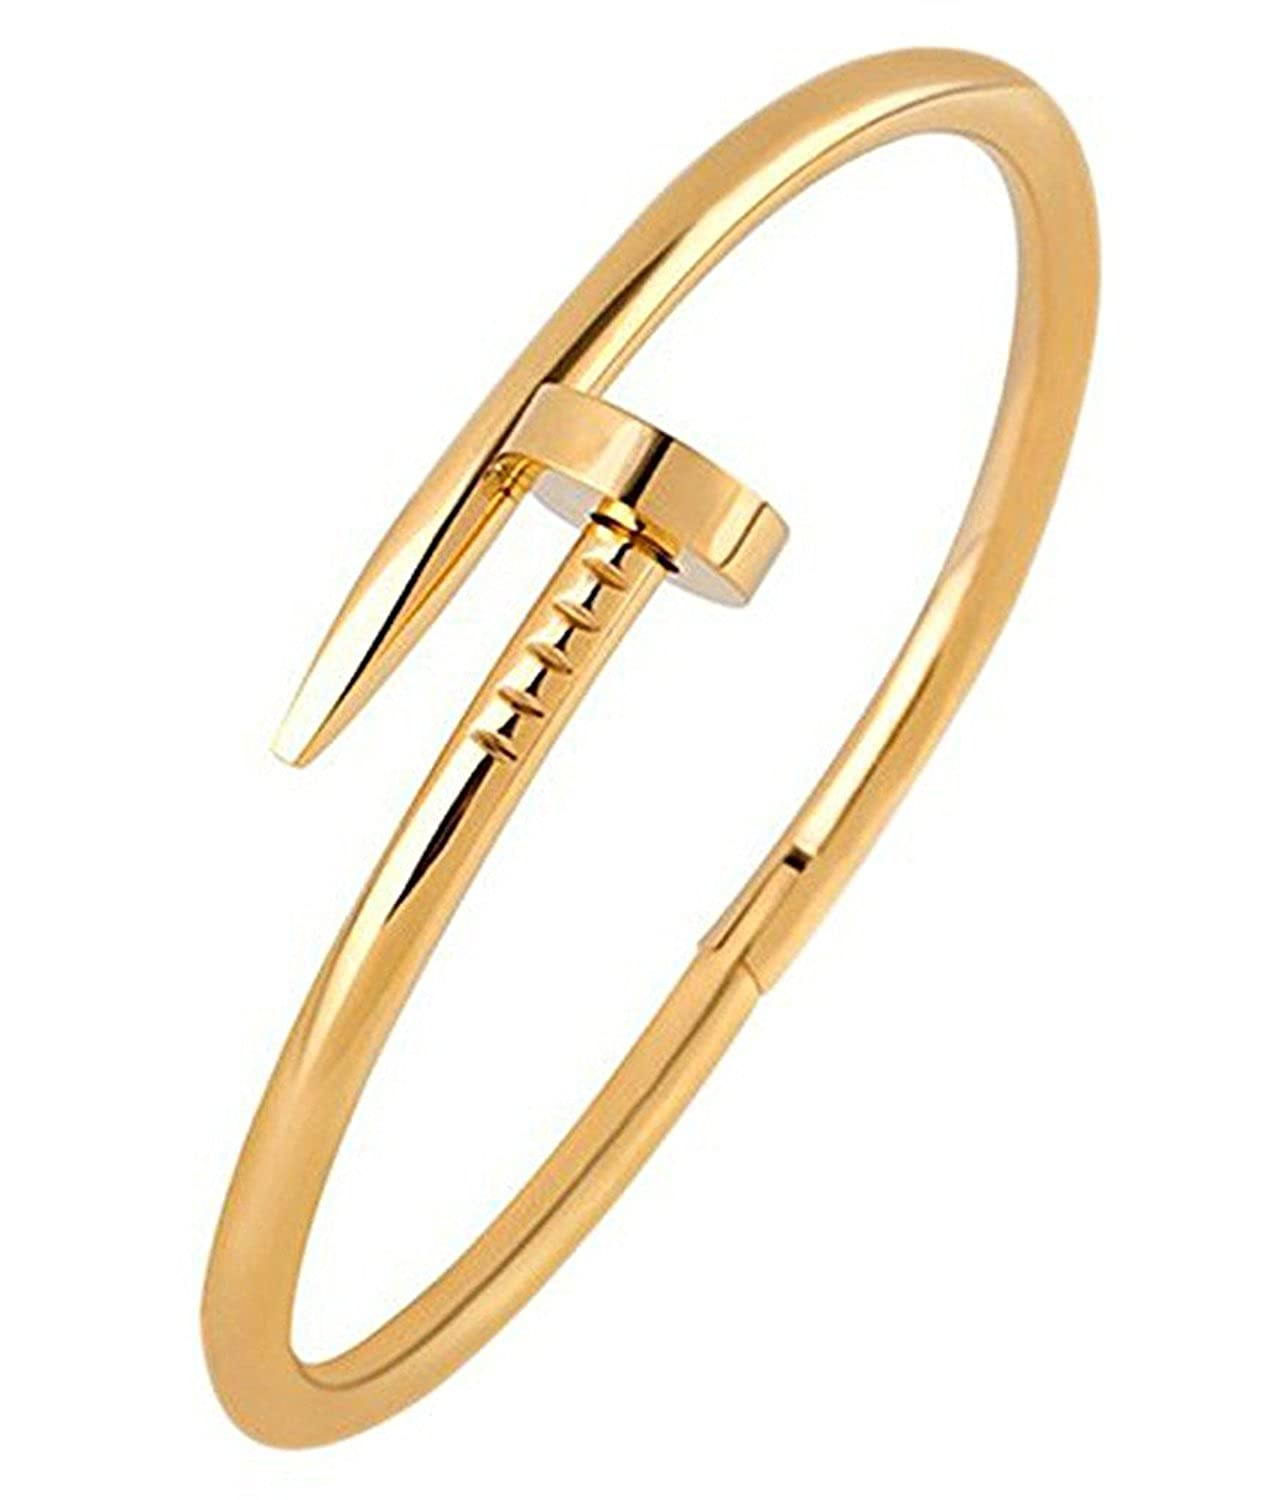 93d8810fb Original Titanium Steel Illusion Nail Bend Wrist Cuff Gold Tone Bracelet  for Men & Women: GadgetsDen: Amazon.in: Jewellery